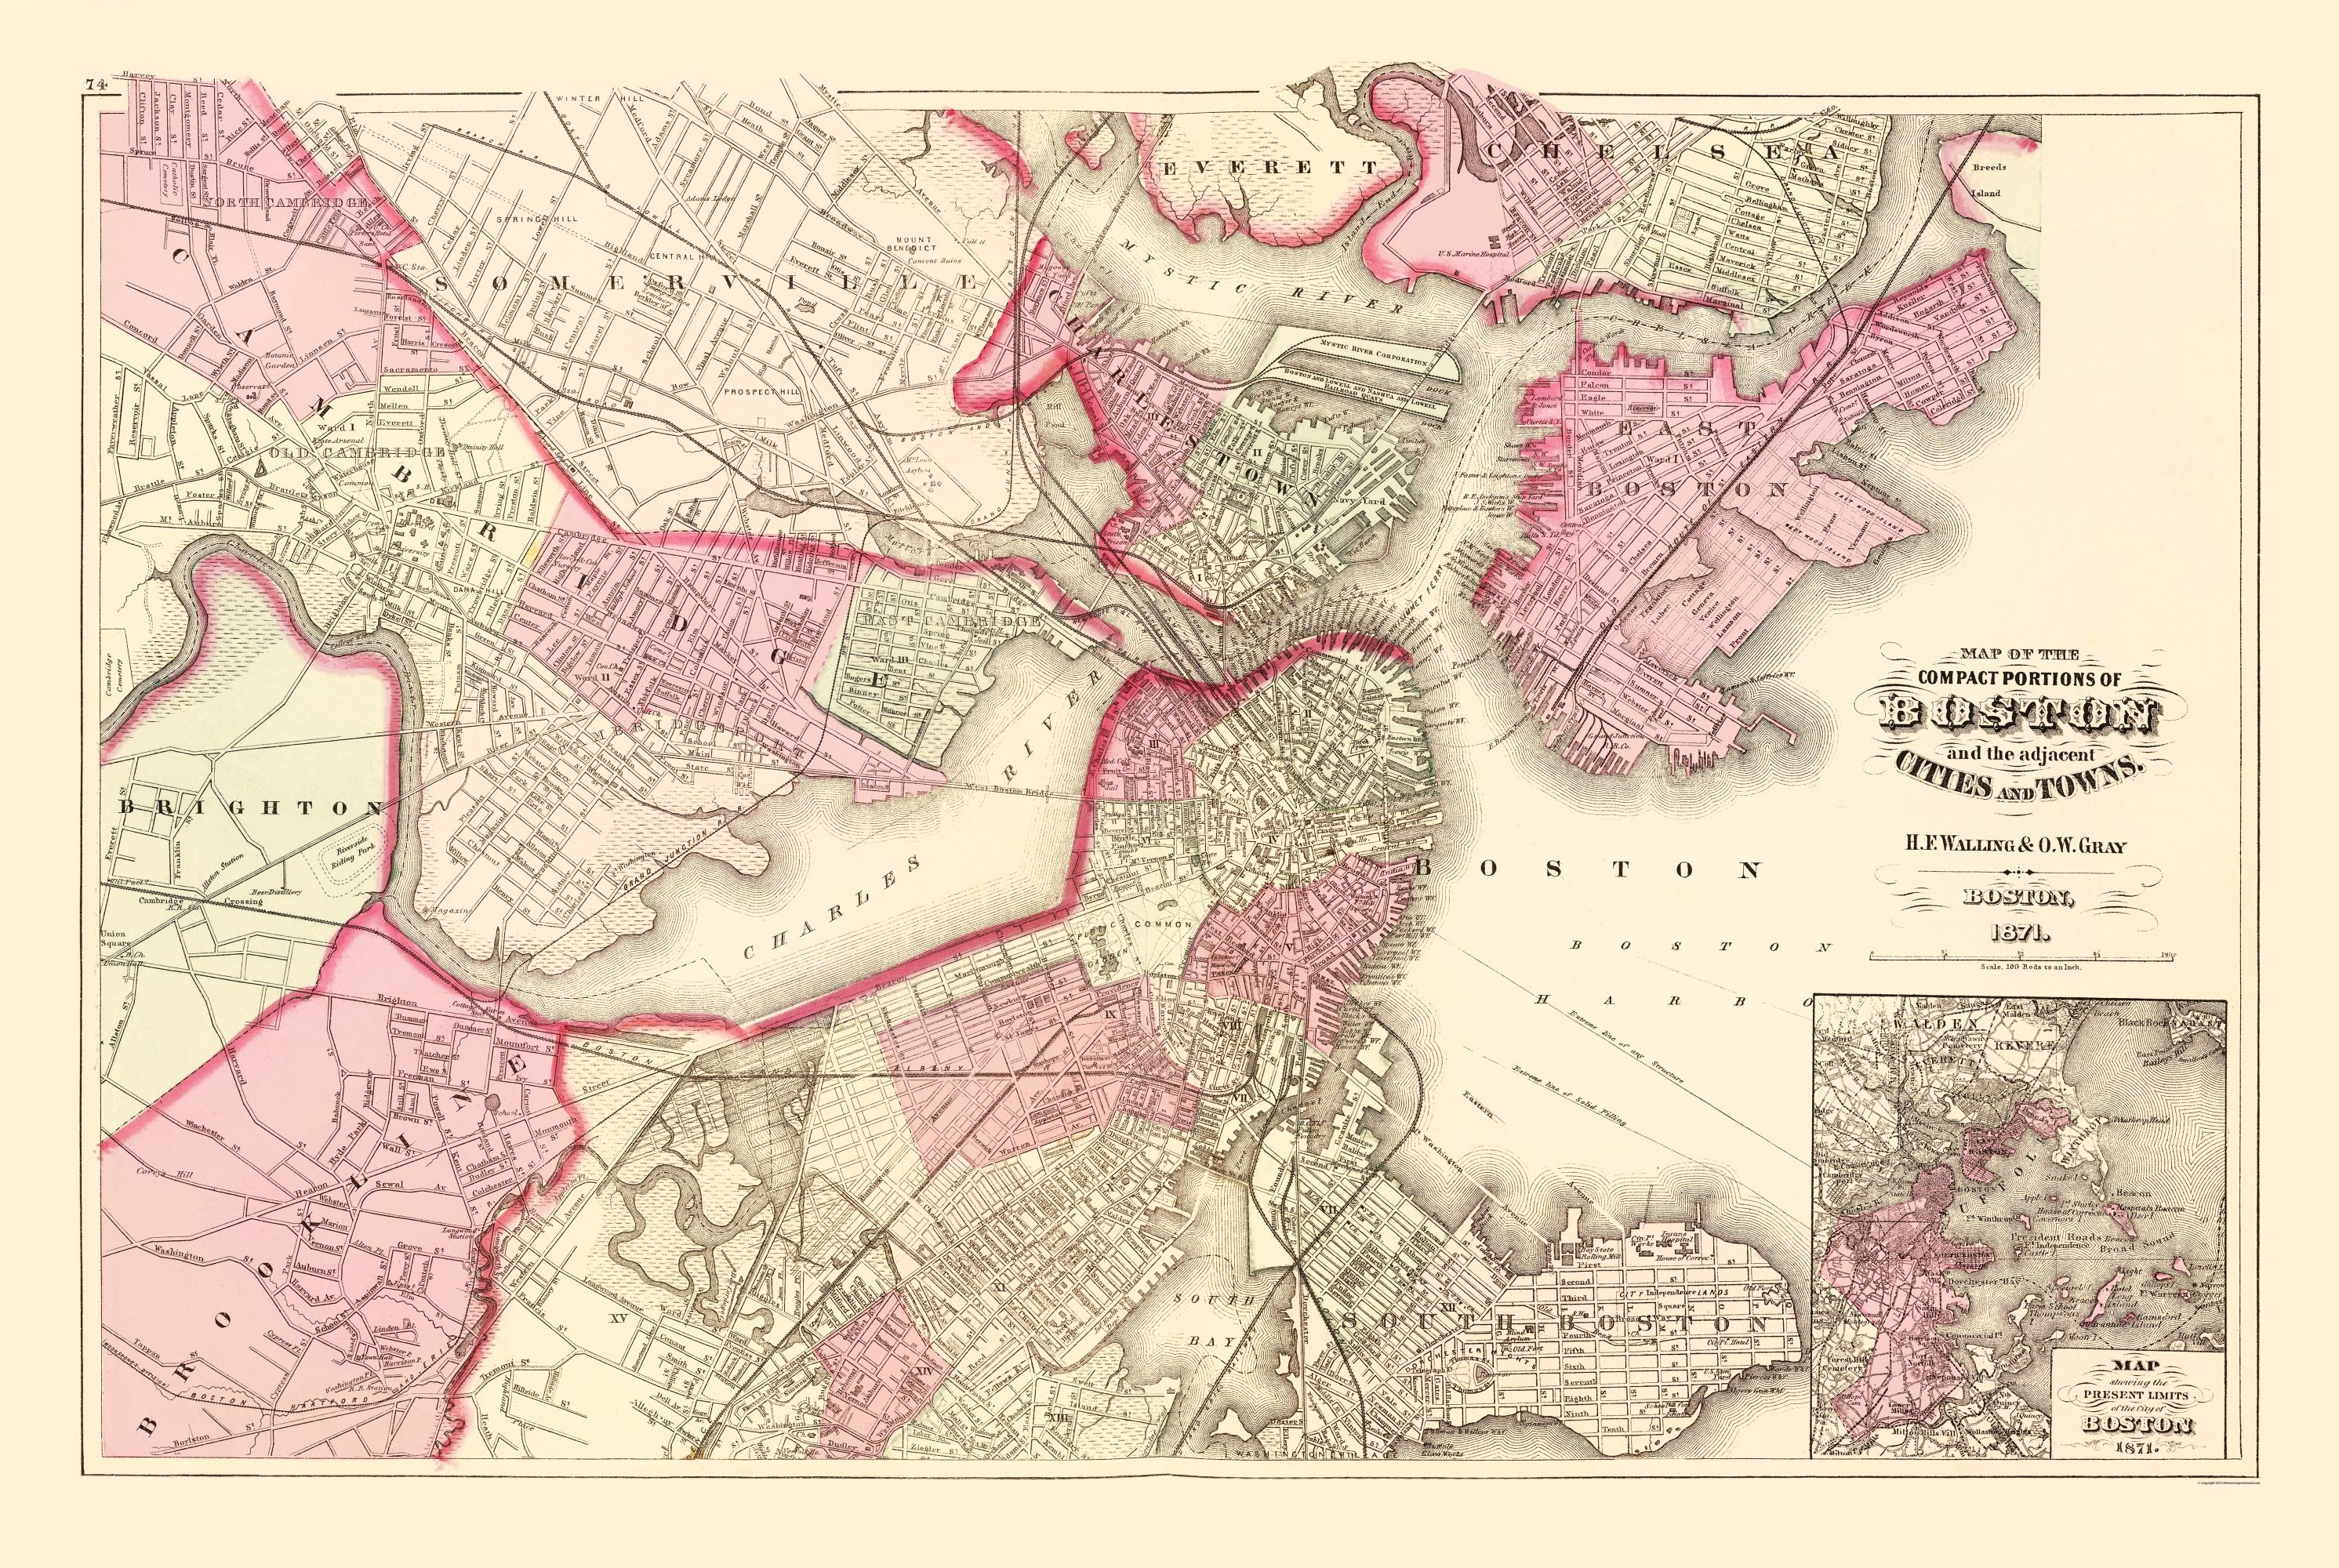 Old City Map - Boston Machusetts - Walling 1871 - 23 x 34.30 Map Boston Machusetts on new england map, mass map, philly map, michigan map, fenway park map, texas map, charles town map, lexington map, america map, u.s. state map, united states map, ma map, phoenix map, mississippi map, massachusetts map, freedom trail map, pennsylvania map, ny map, usa map, cambridge map,